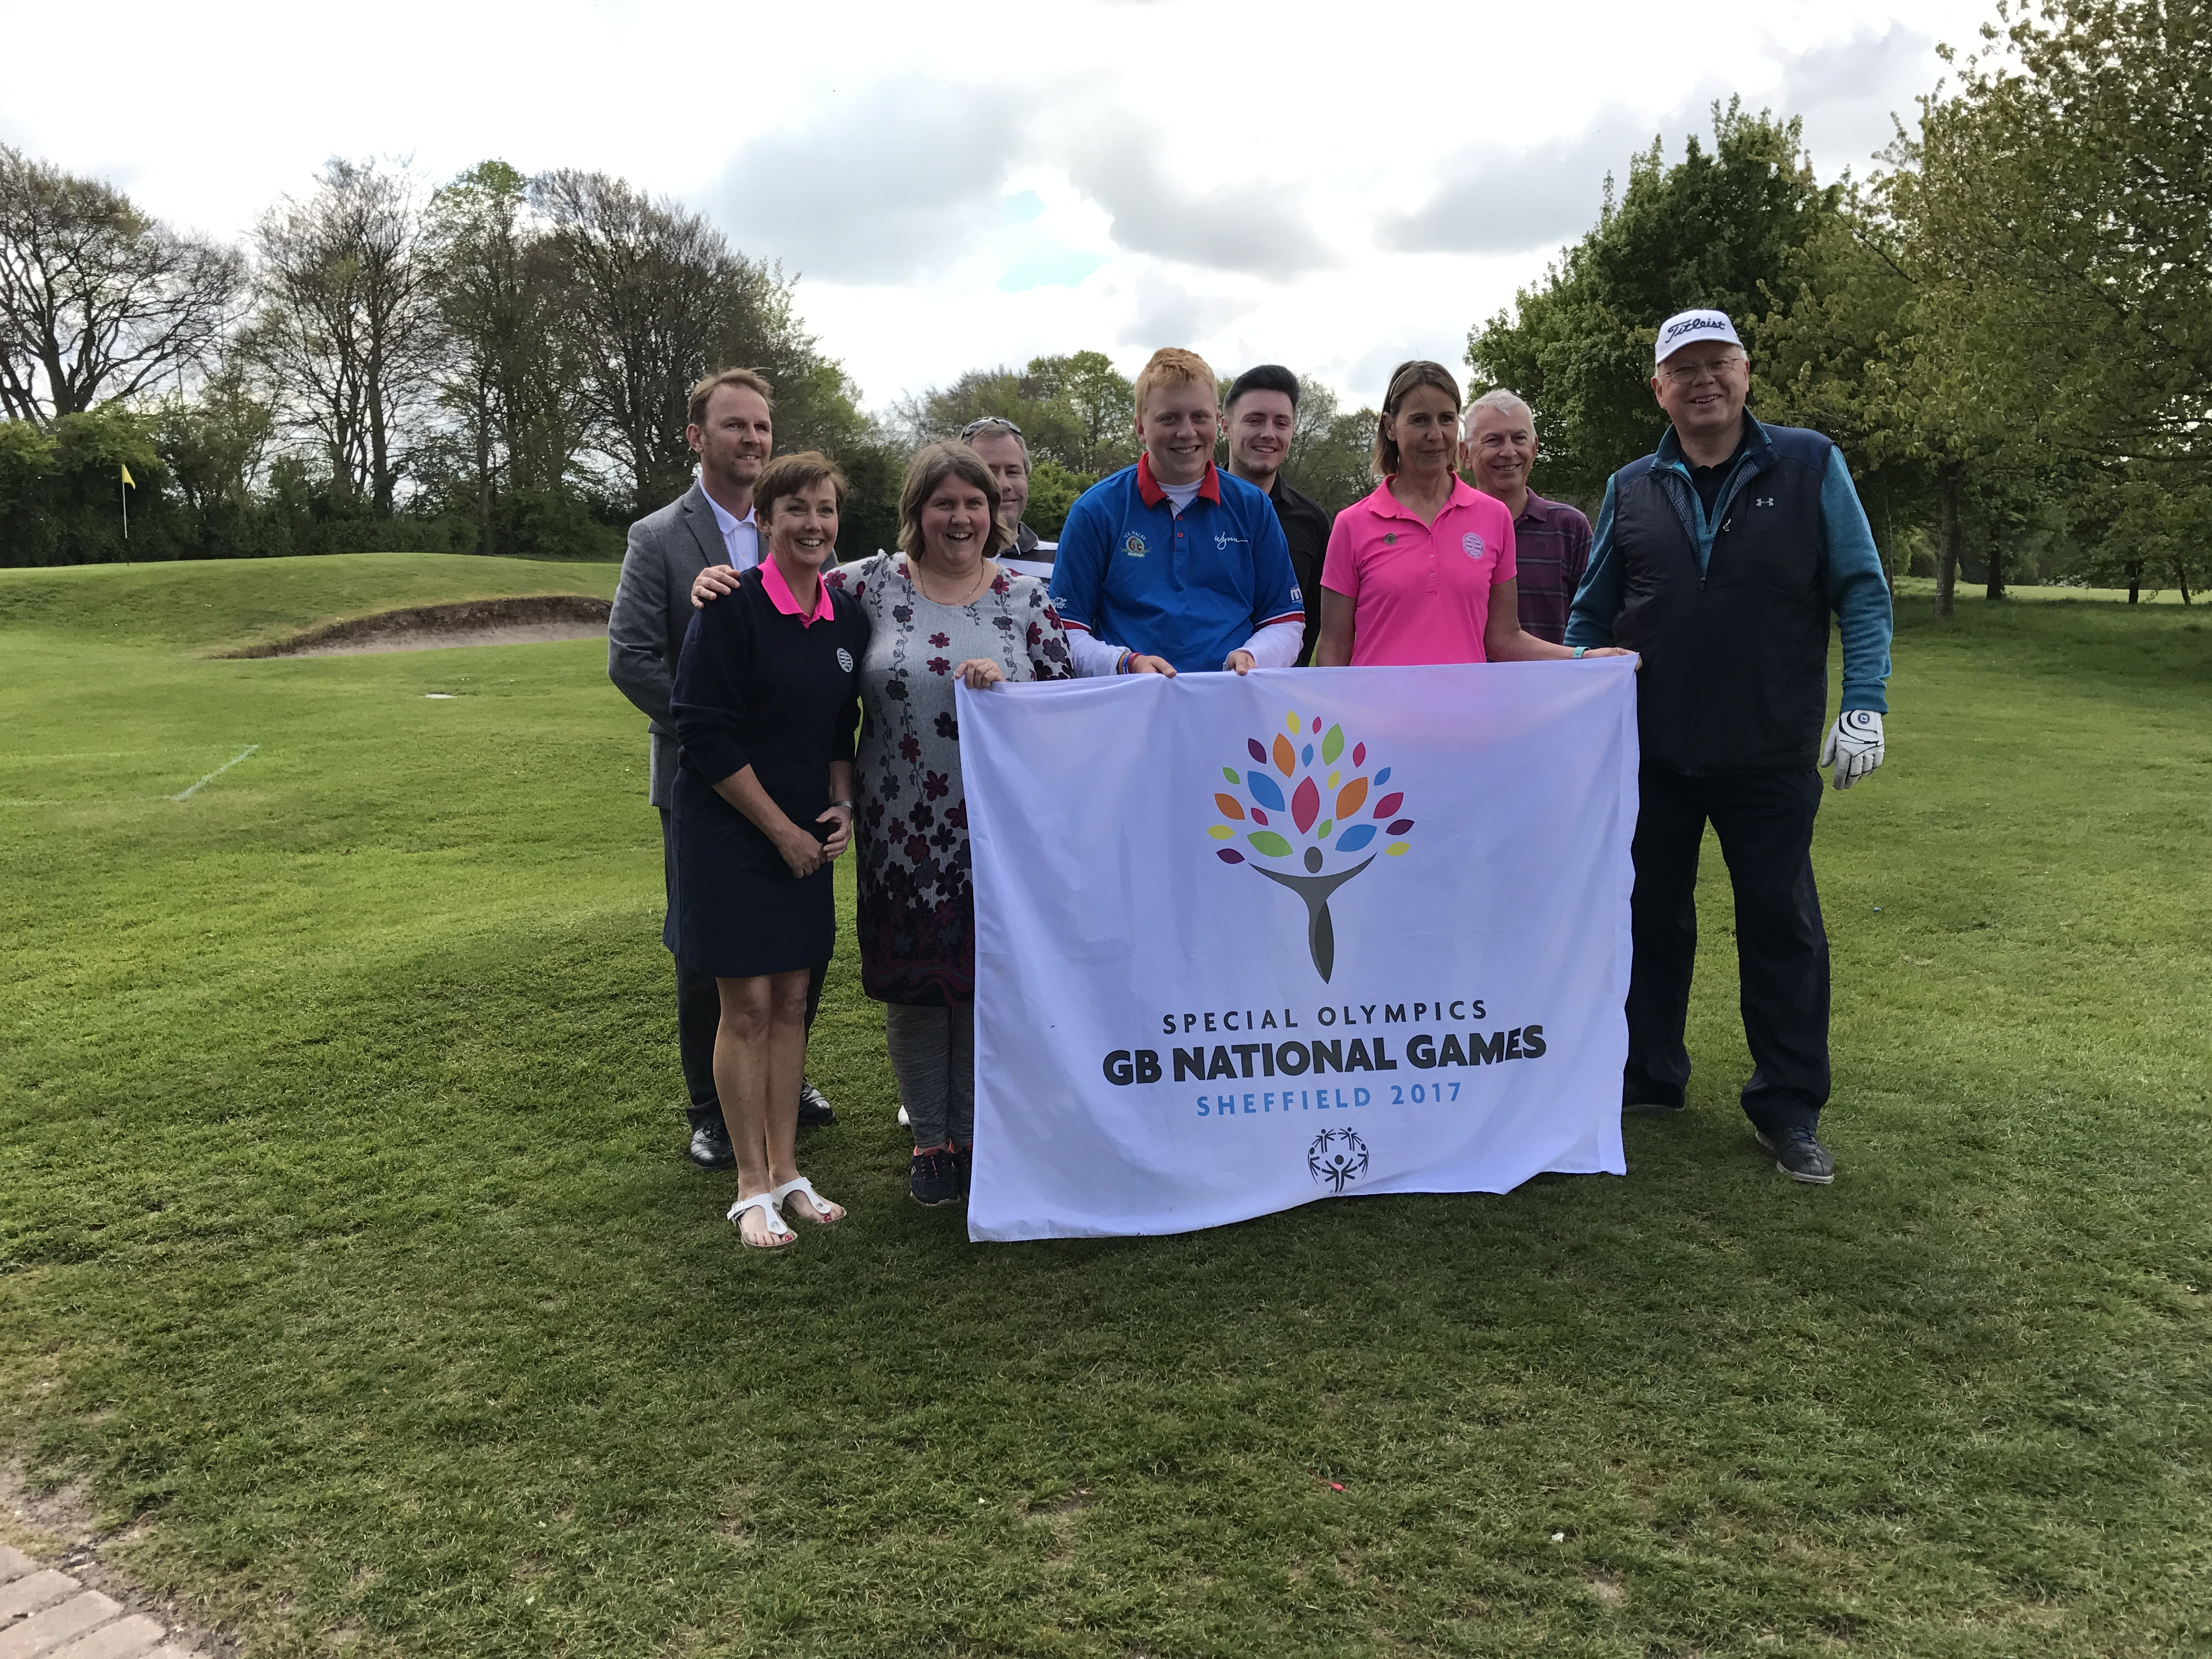 Warren with members of his club, looking forward to the Special Olympics GB National Games in Sheffield